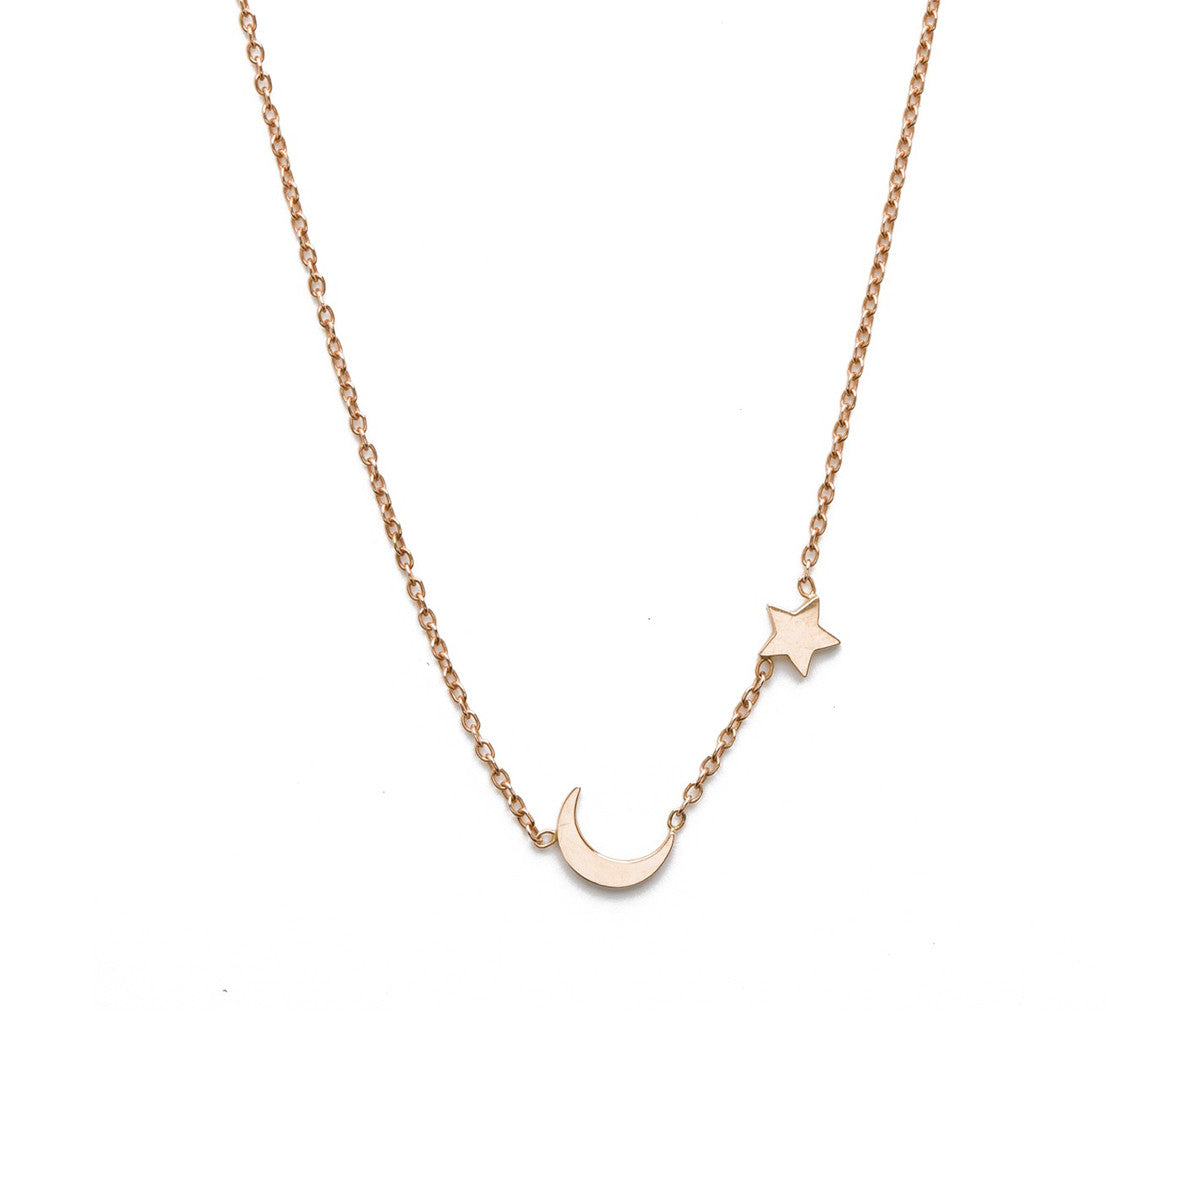 Lena wald 14k gold or silver moon and star necklace iconery moon and star necklace aloadofball Choice Image